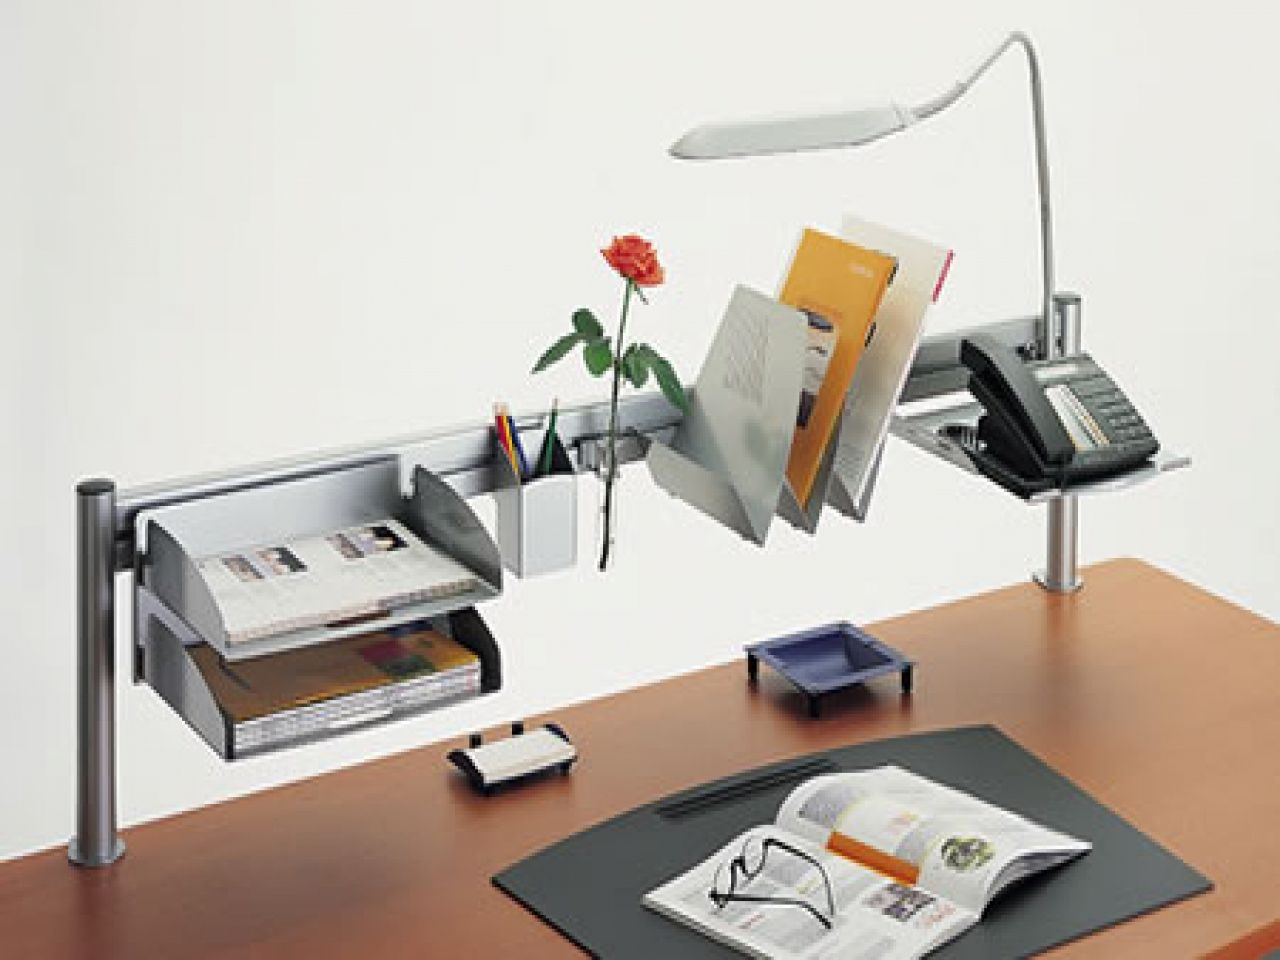 luxury office desk accessories. Mens Office Desk Accessories - Luxury Living Room Furniture Sets Check More At Http:/ S